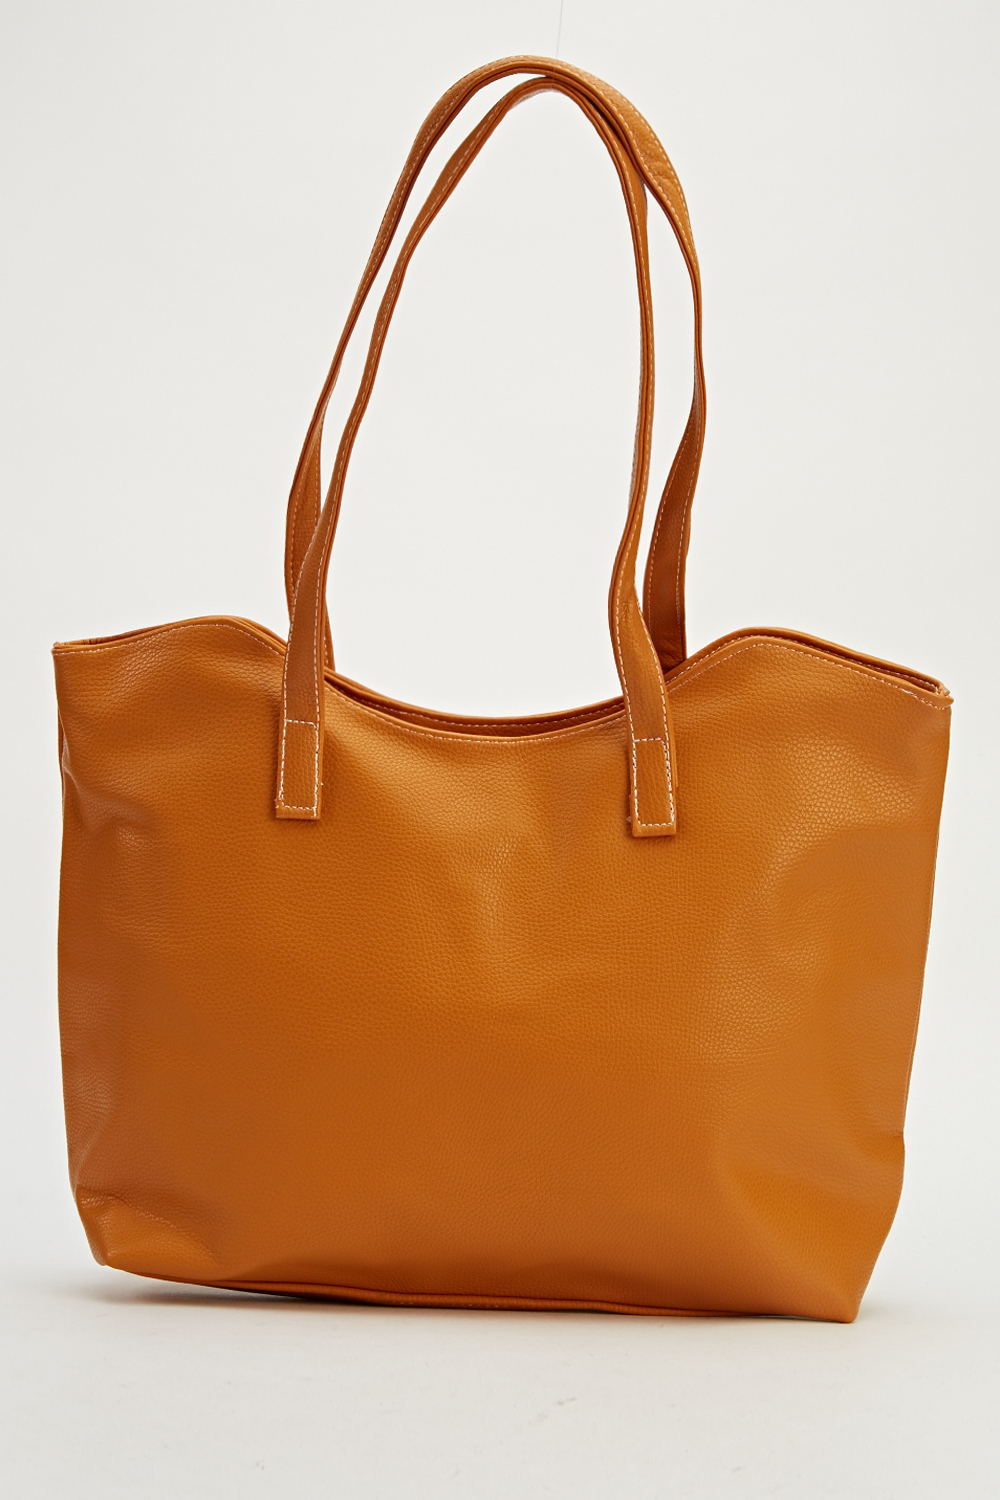 d2a416512b Faux Leather Camel Handbag - Just £5